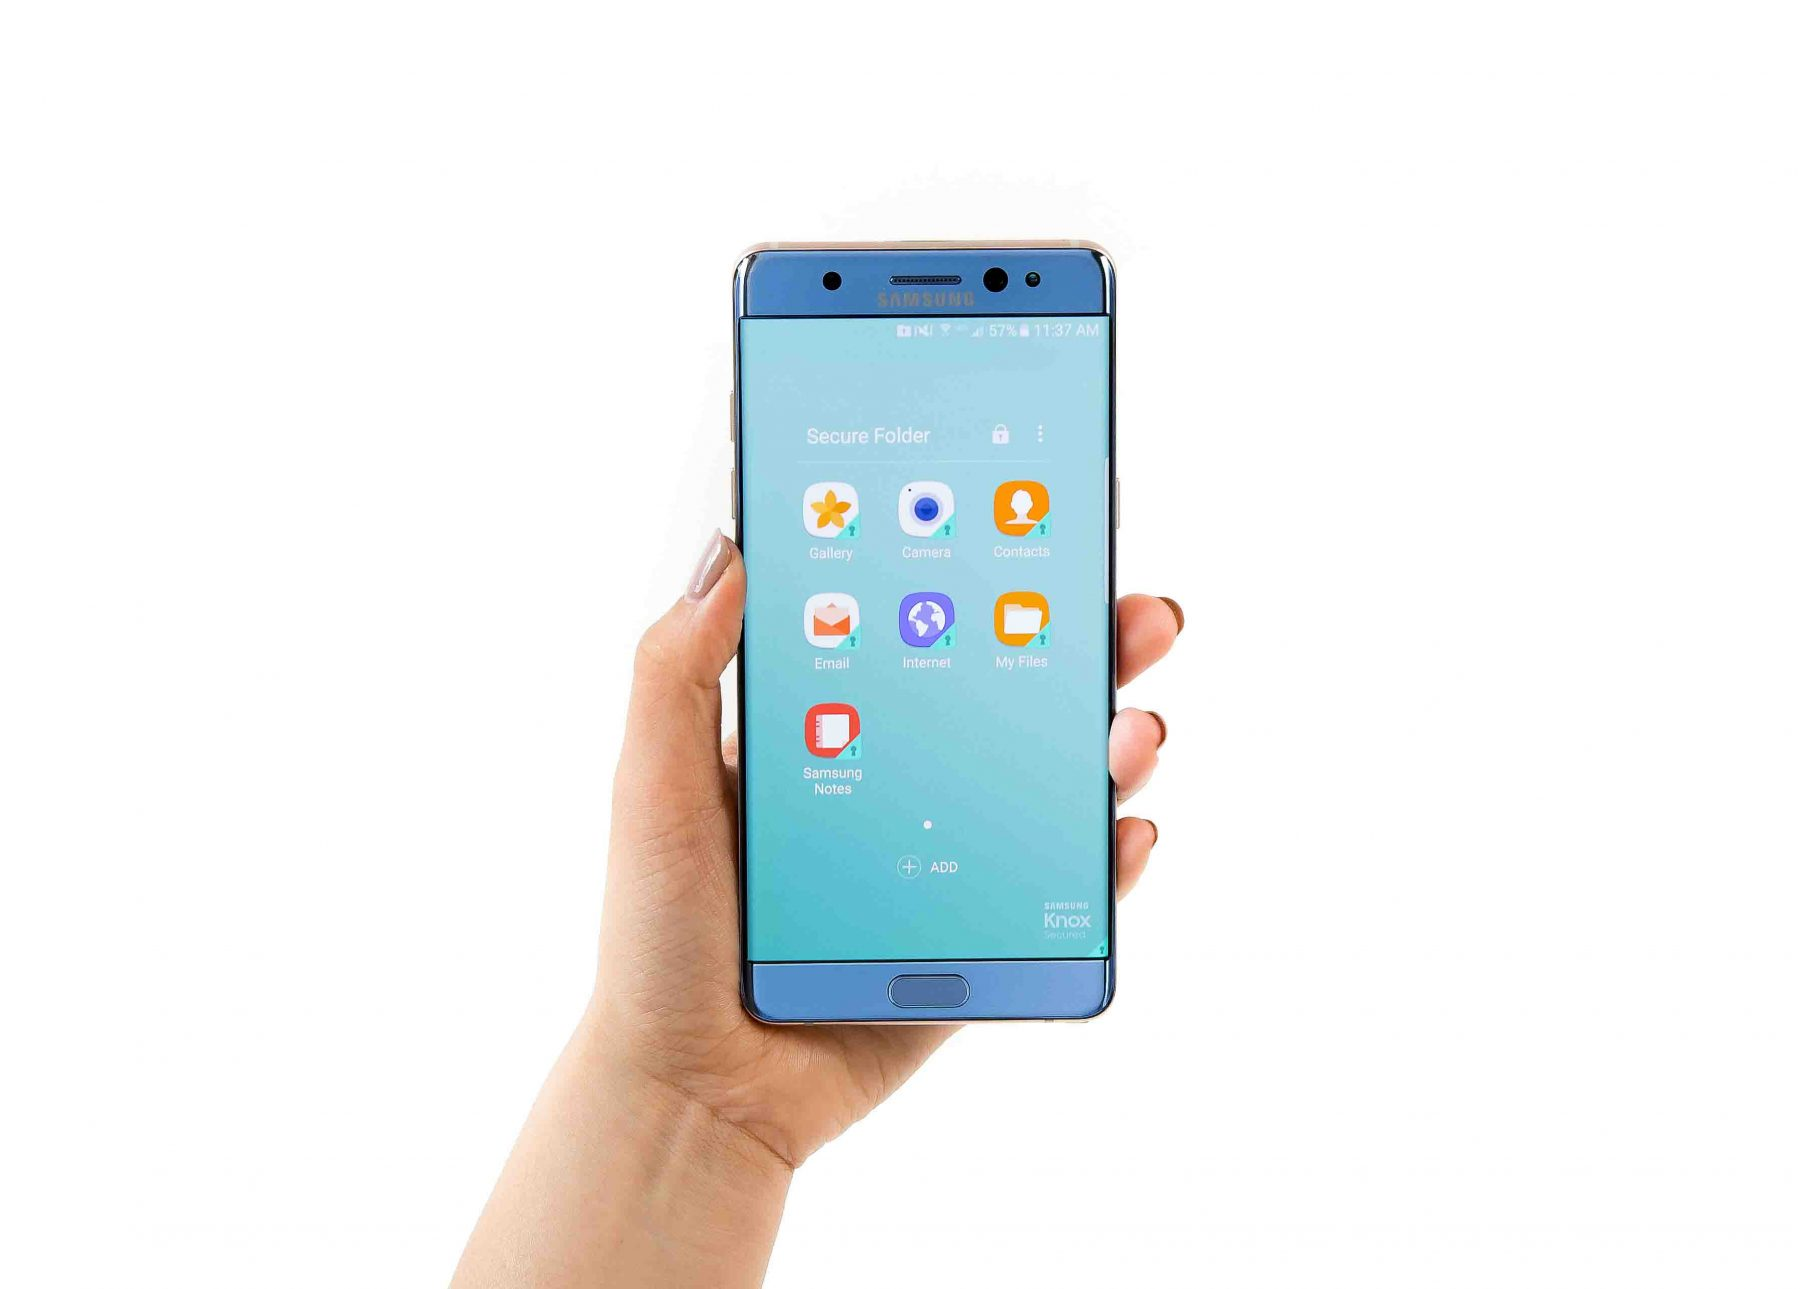 galaxy-note7-hands-on_28101963964_o